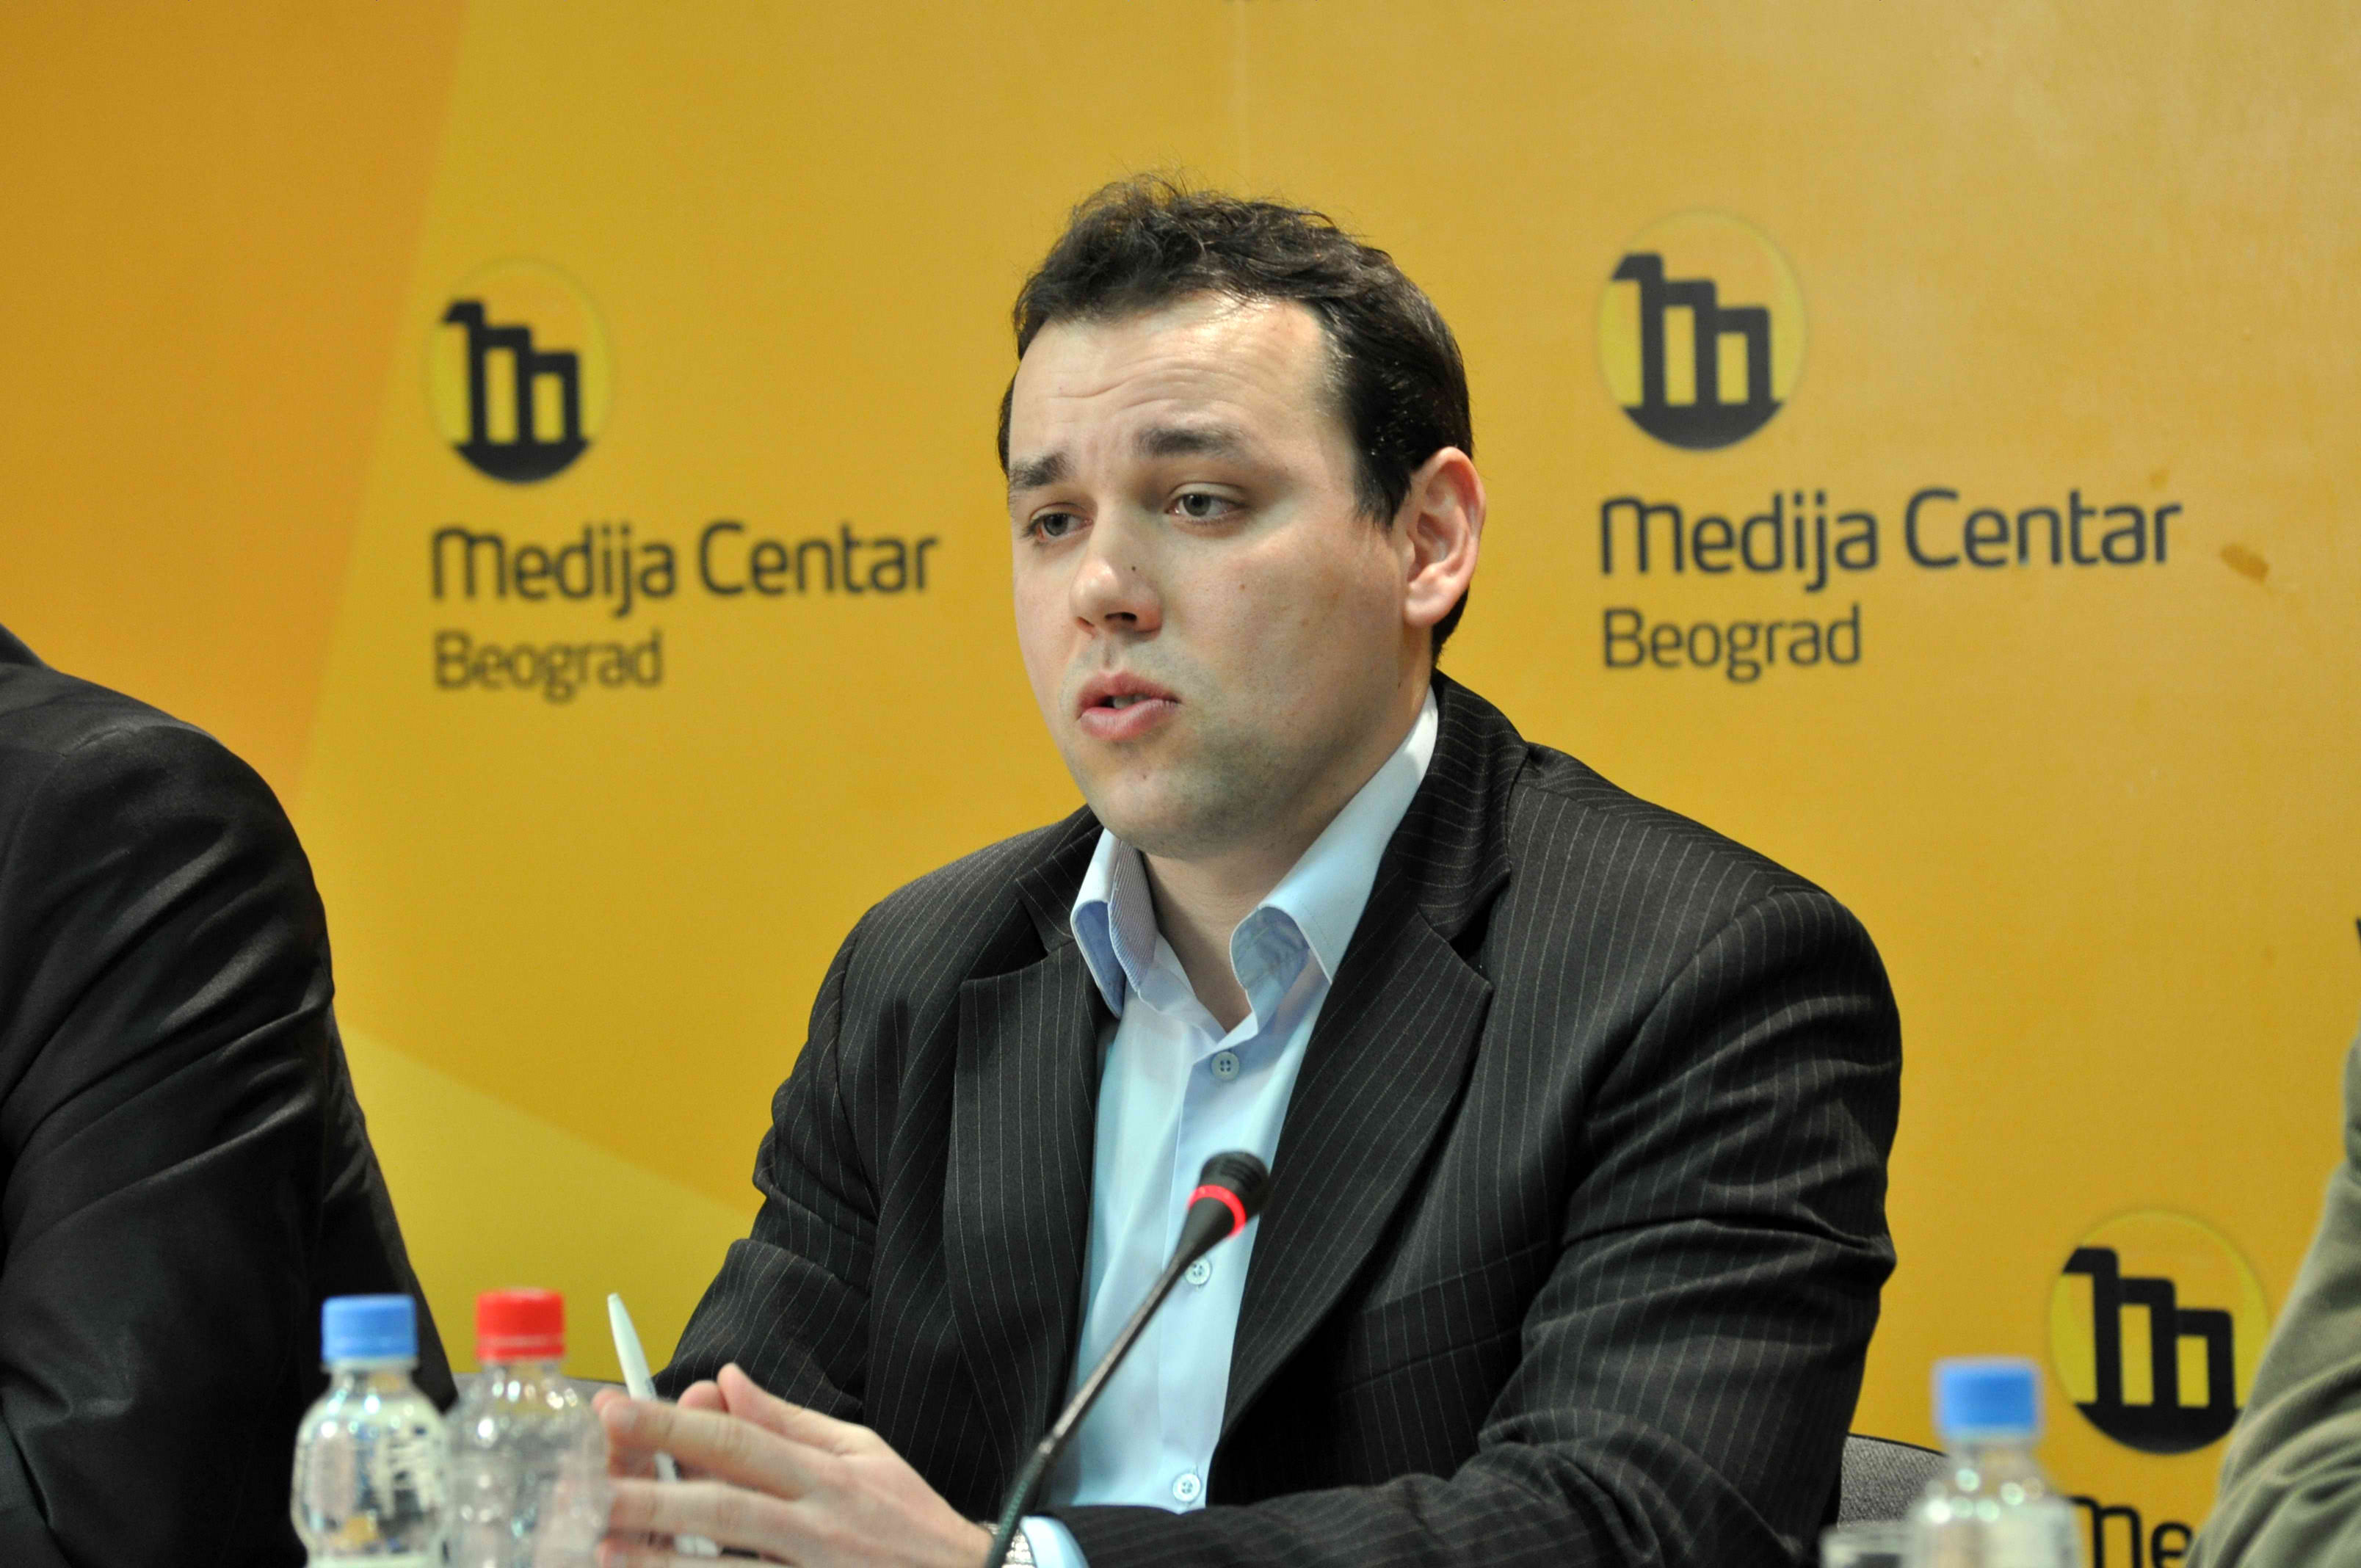 Reforms in Serbia have been reduced to cosmetic changes